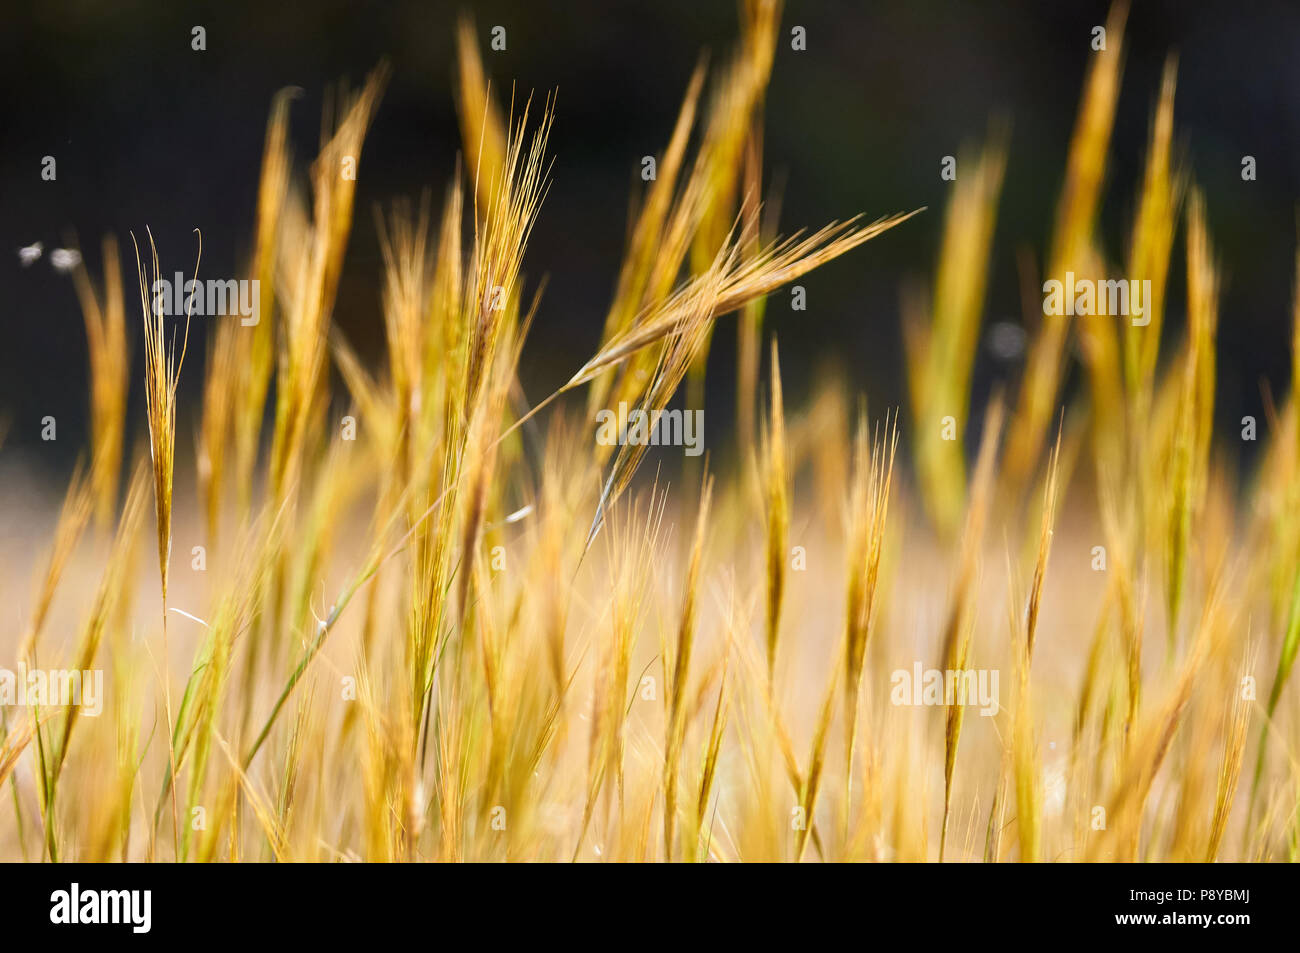 Esparto grass (Stipa sp.) spikes in Can Marroig public estate in Ses Salines Natural Park (Formentera, Balearic islands, Spain) - Stock Image